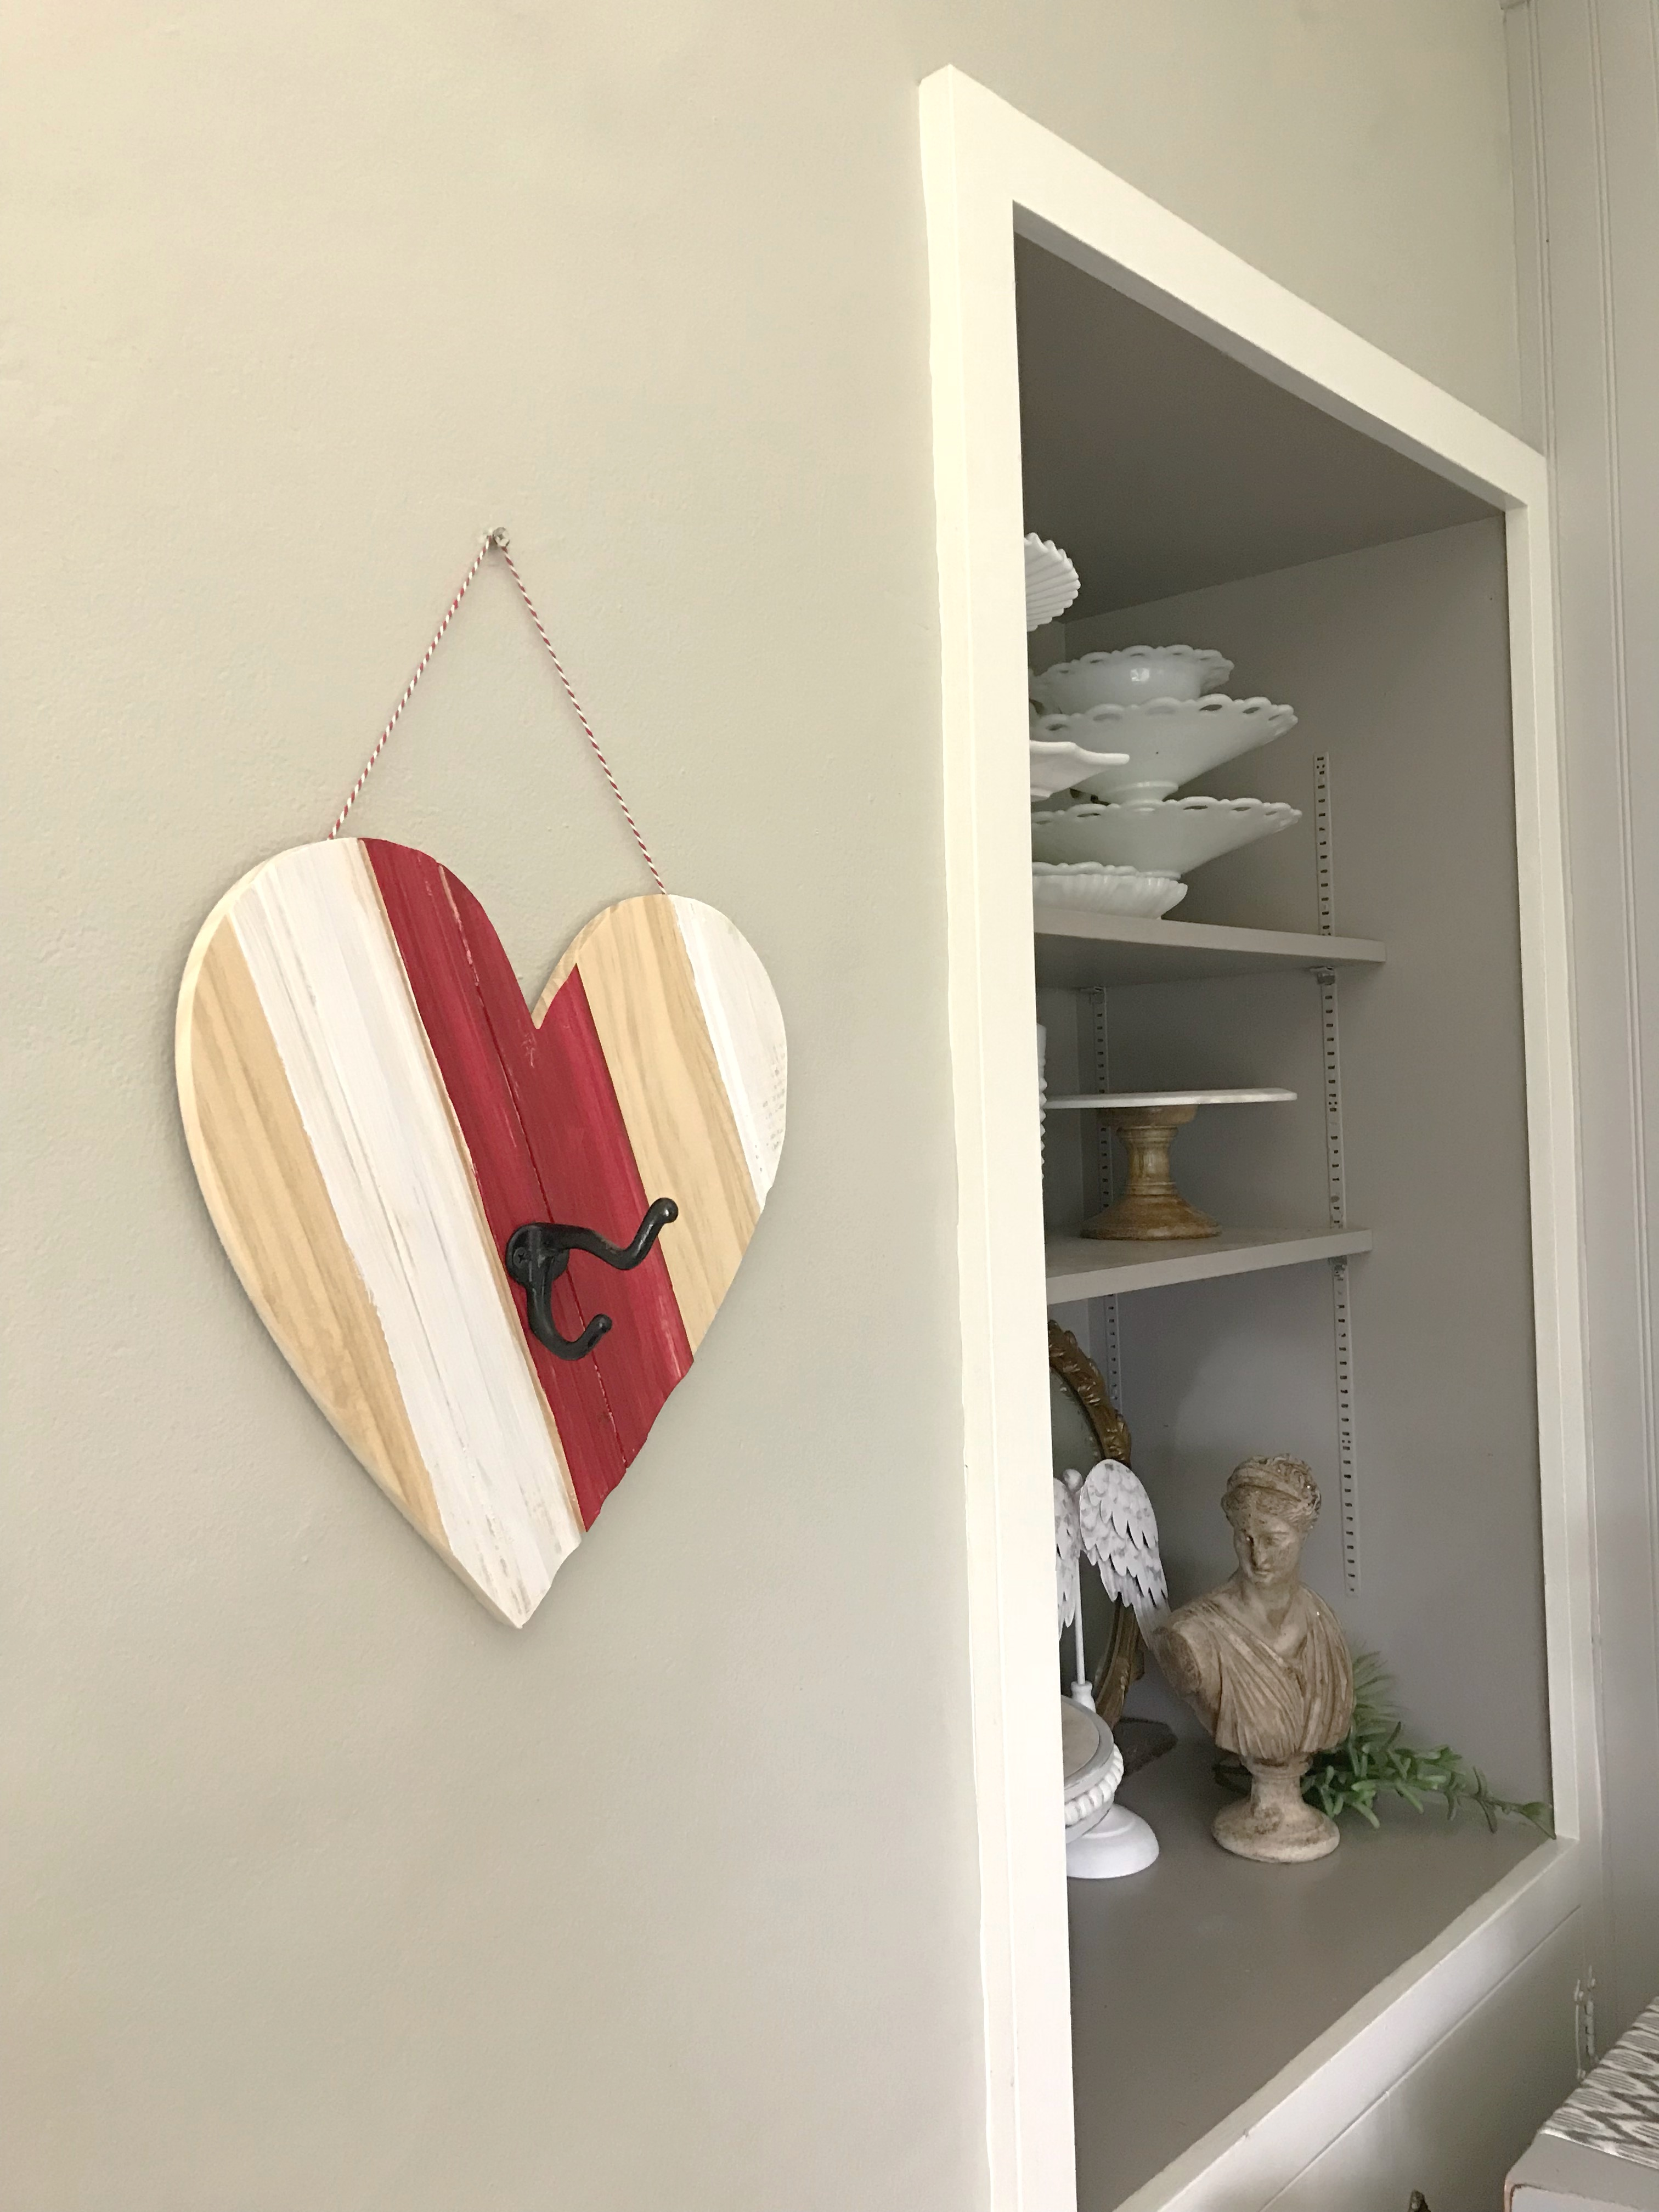 Heart Shape with Coat Hook and storage nook with cake stands